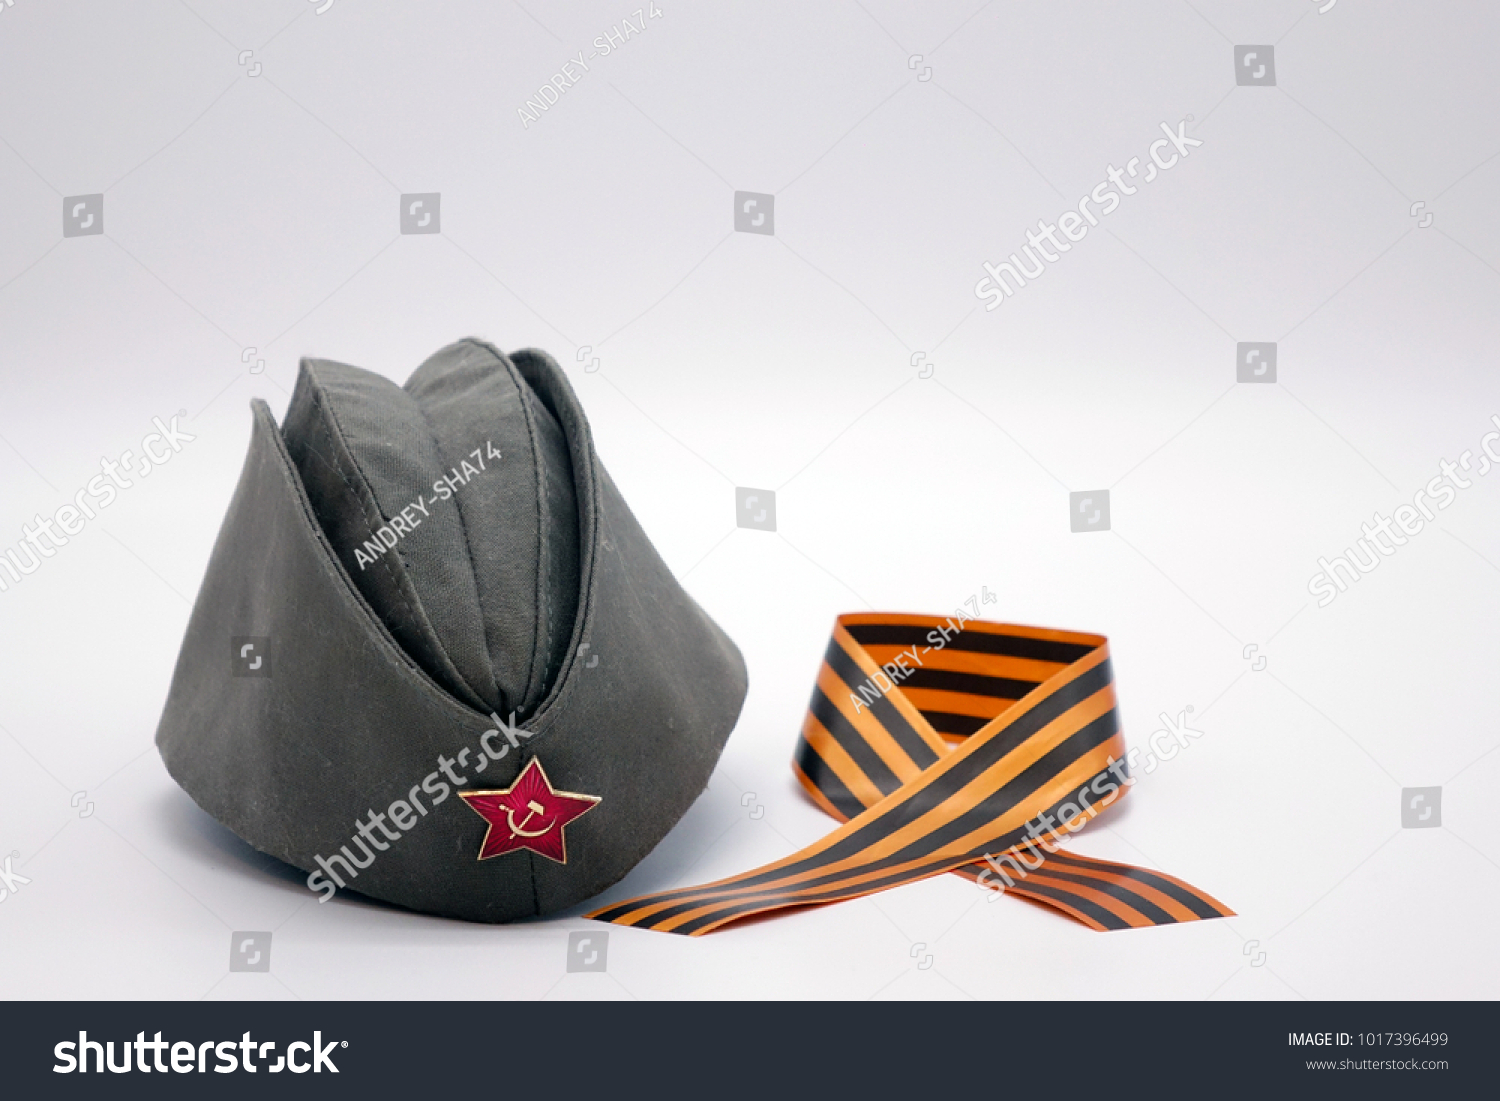 c3cd025fb Military Cap Communist Decoration Red Star Stock Photo (Edit Now ...